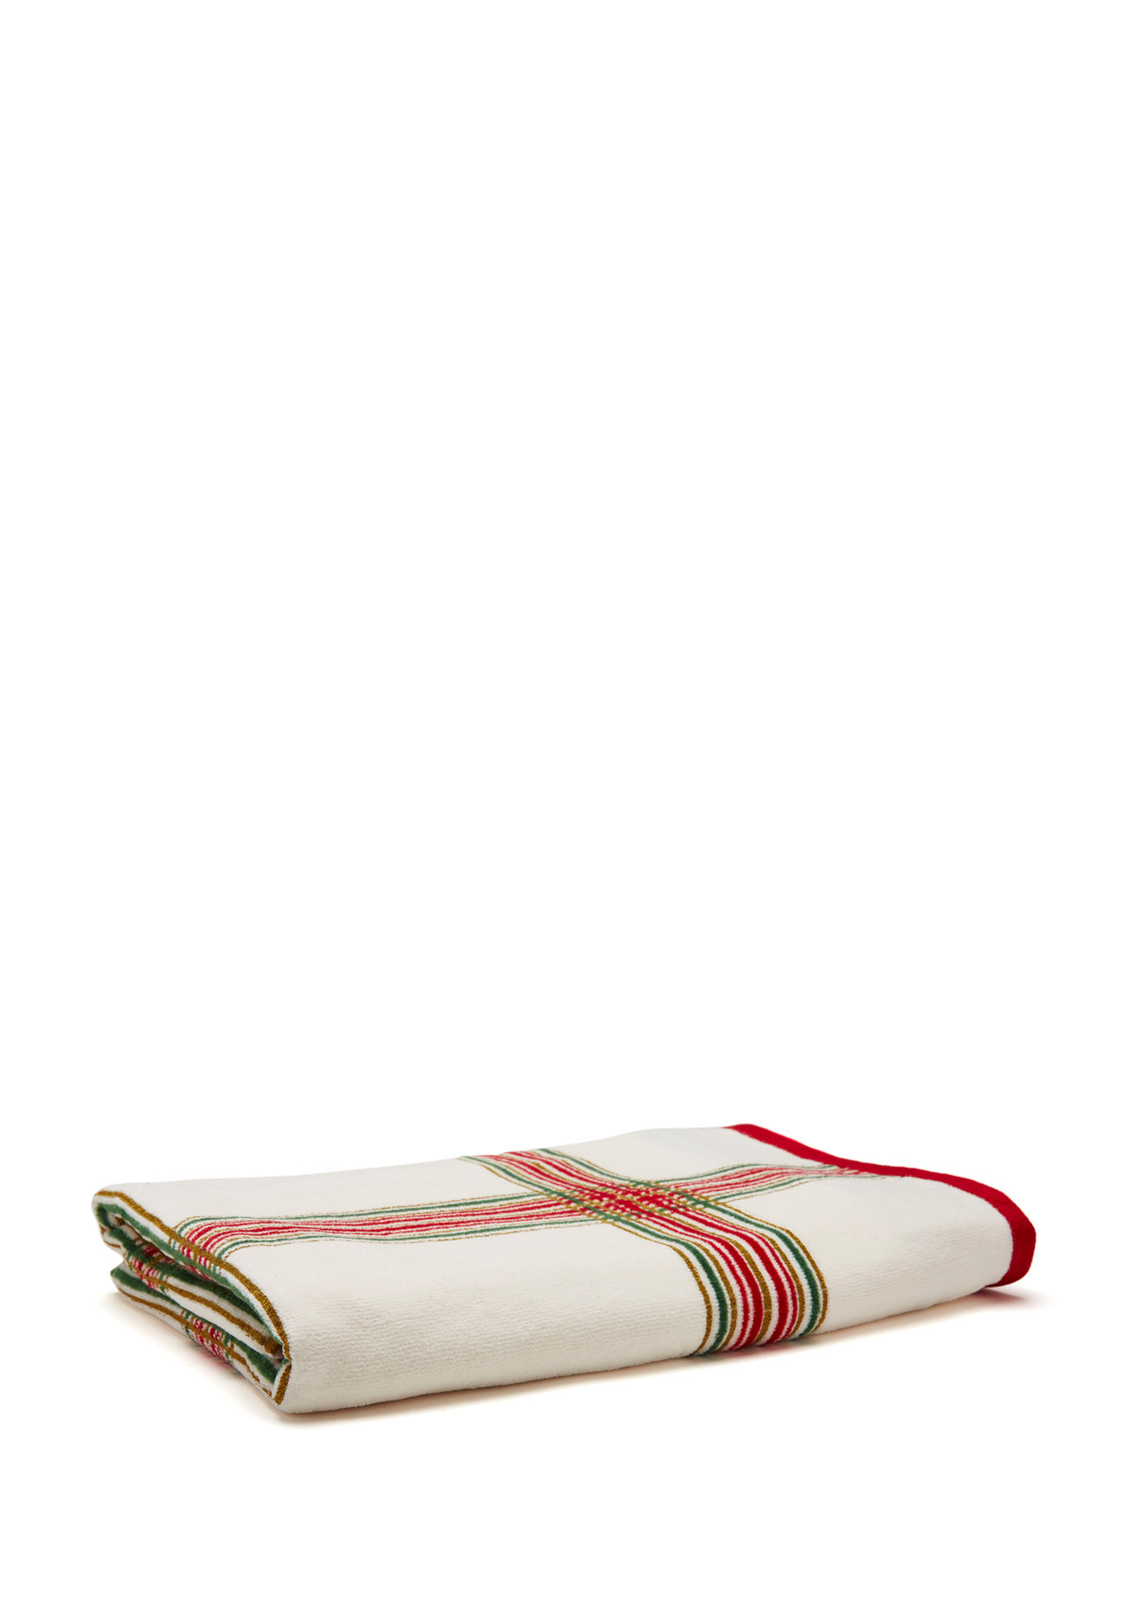 Lenox Holiday Nouveau Plaid Christmas Bath Towel